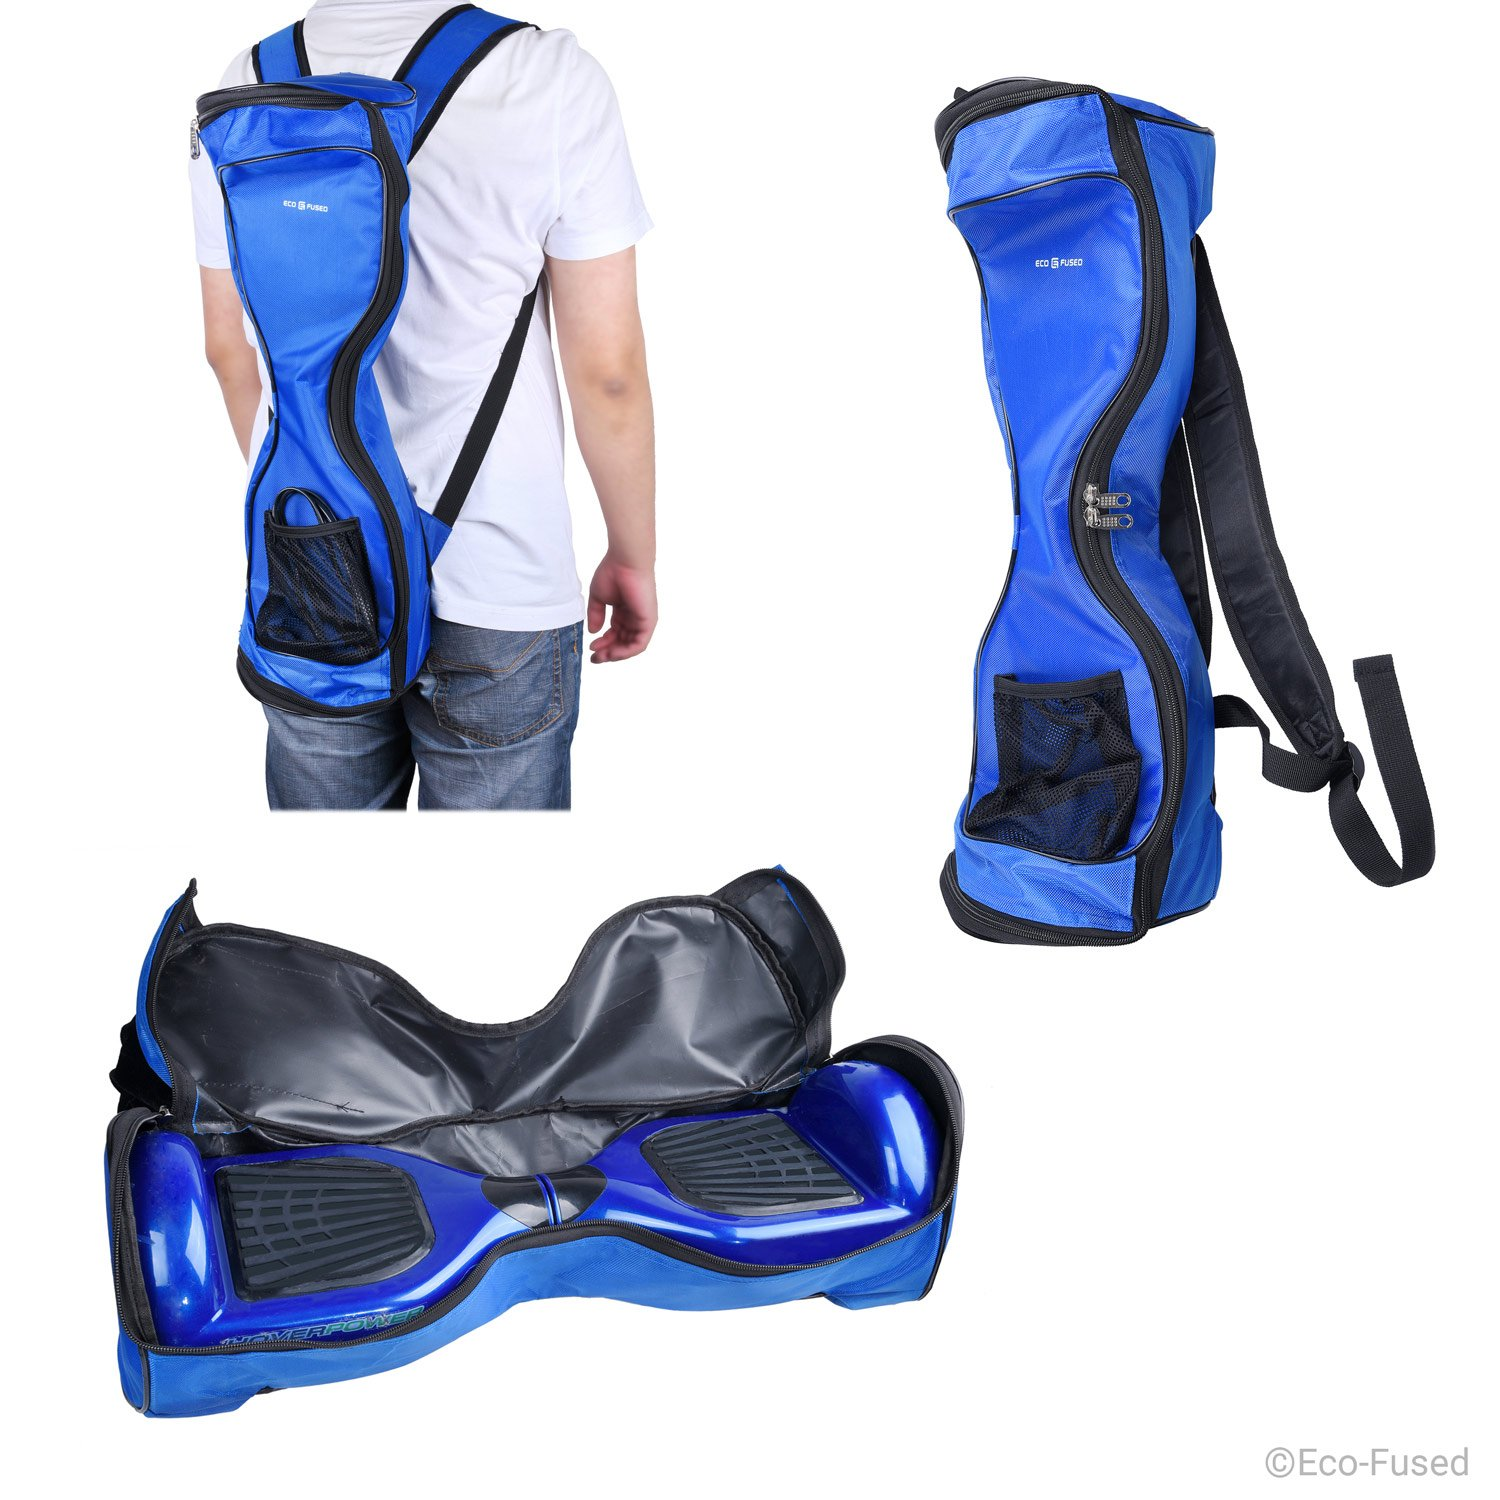 Waterproof Backpack to Carry/Store your drifting board (Two Wheels Smart Balance Board Scooter Electric Self Smart Drifting Board) - Mesh Pocket - Adjustable Shoulder Straps - Carry Handle - Blue